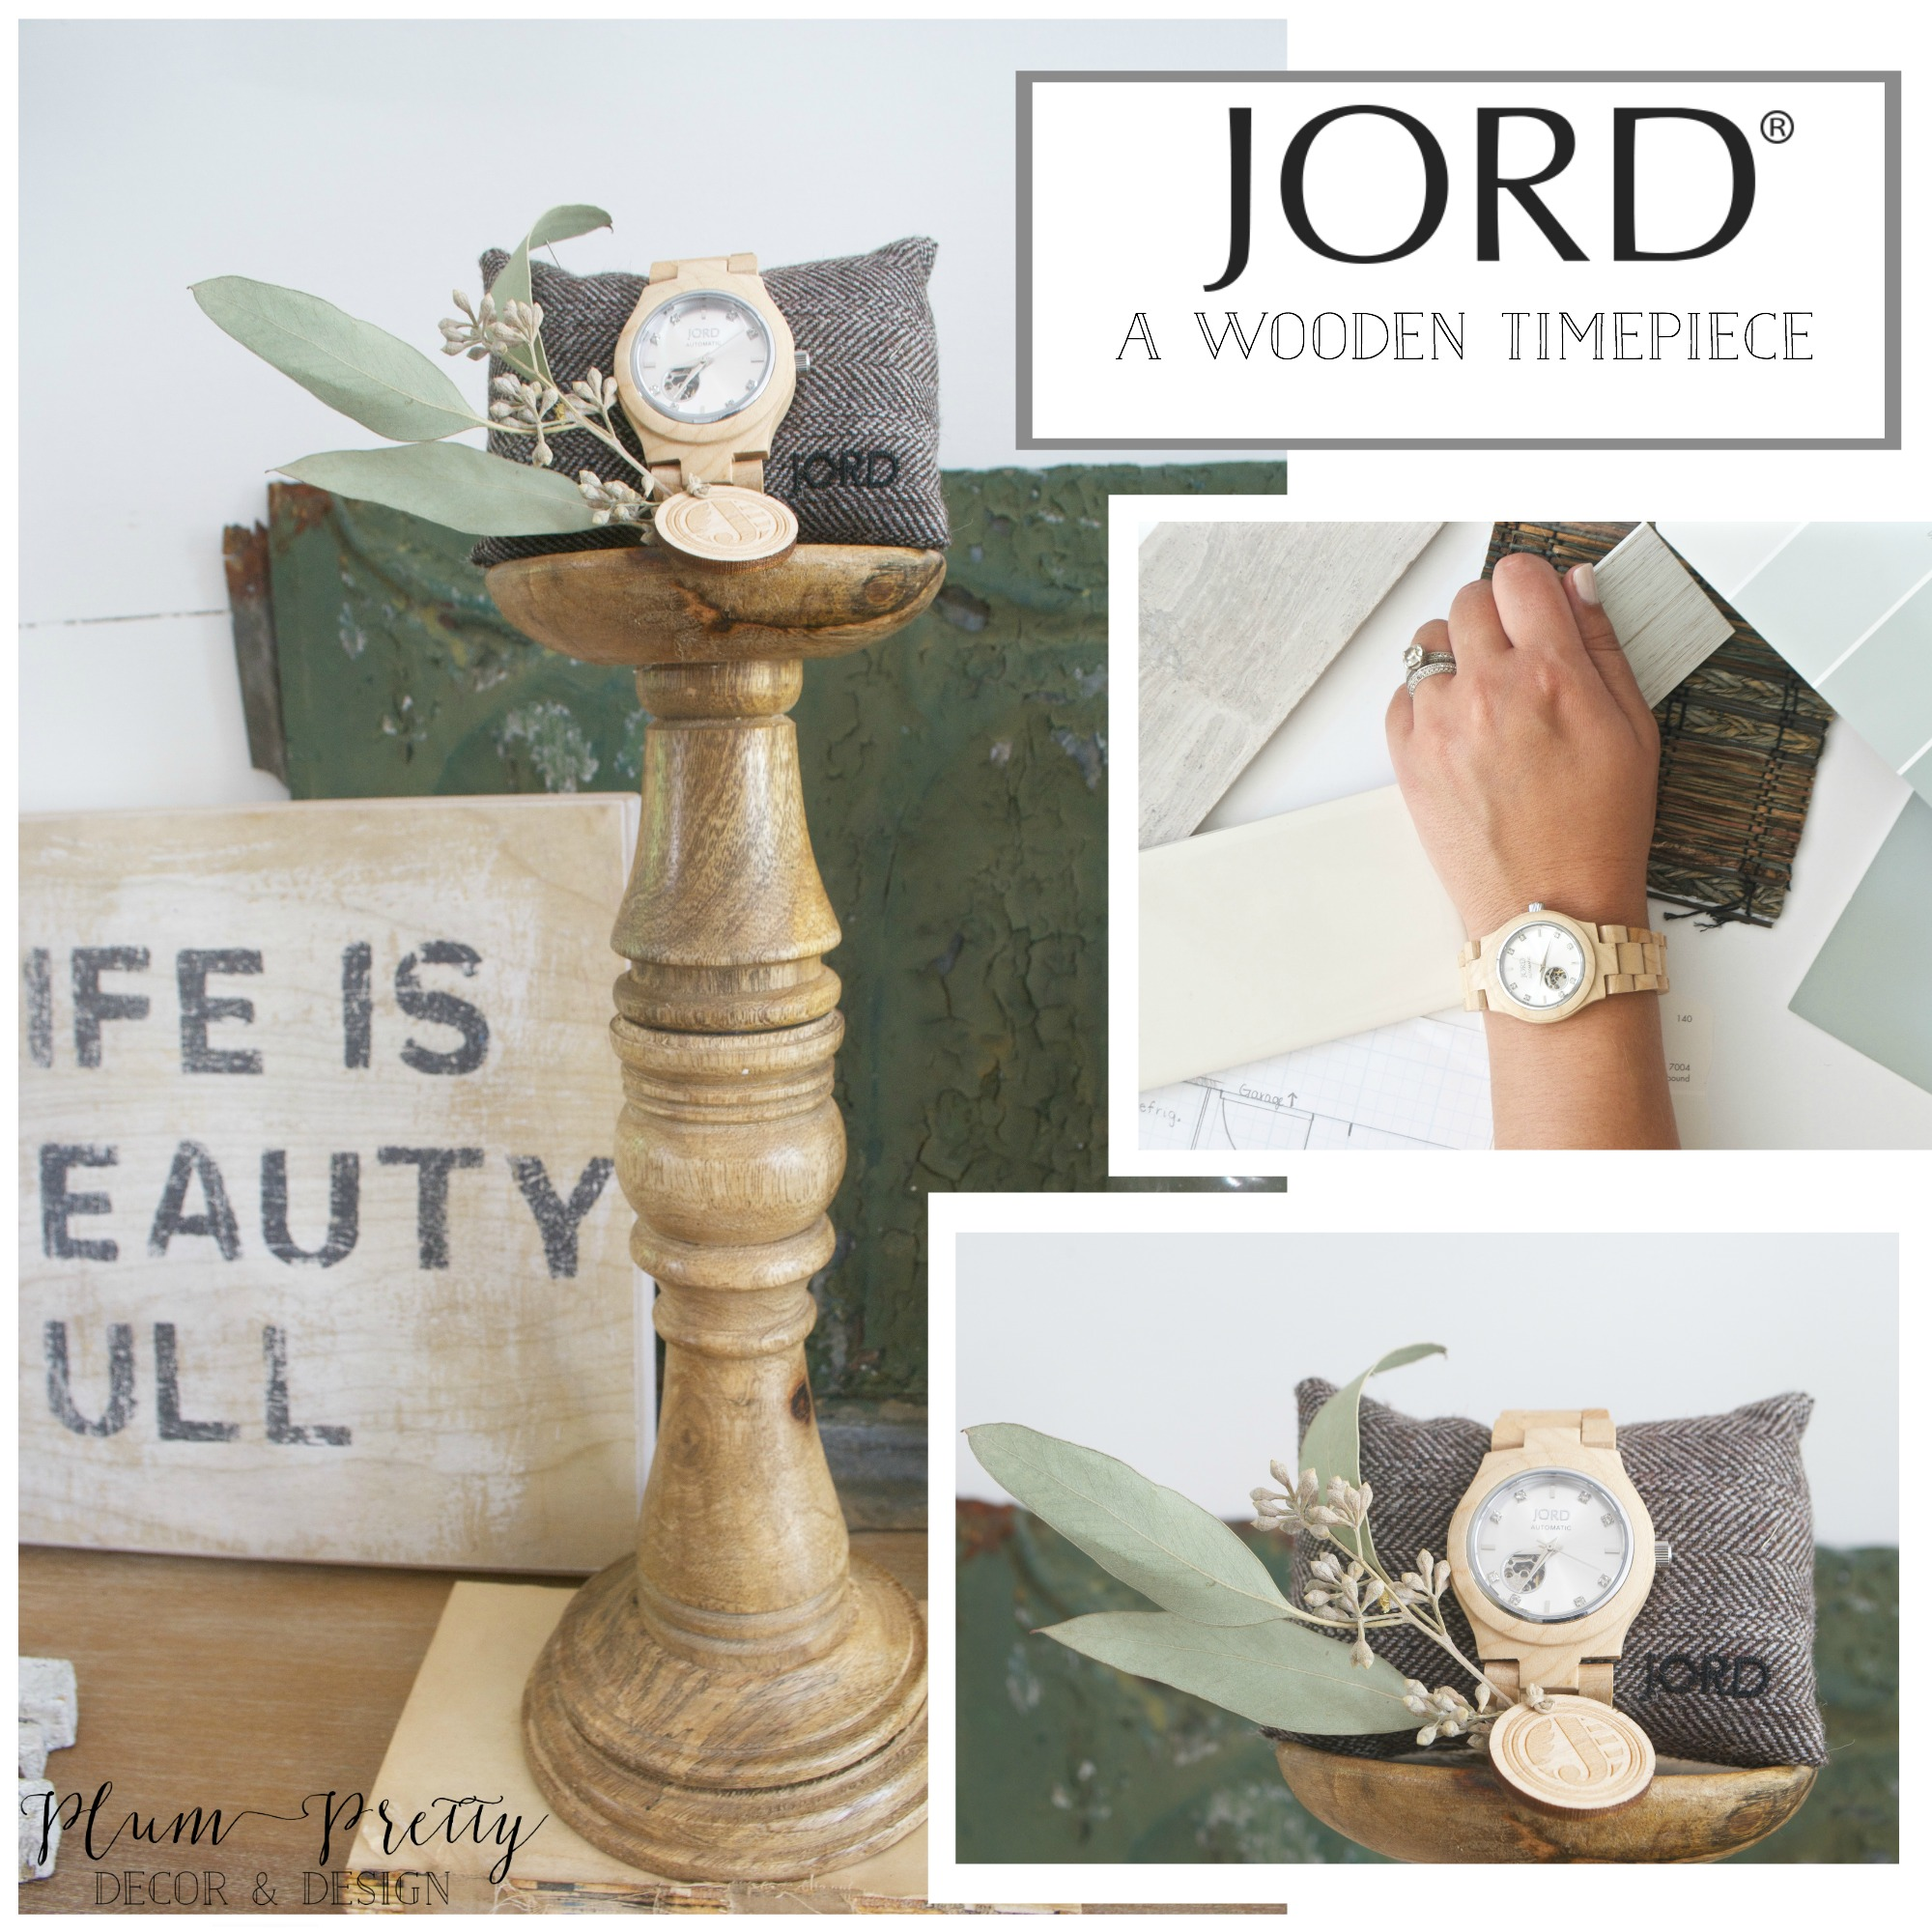 Plum Pretty Decor and Design and Jord Watch Giveaway